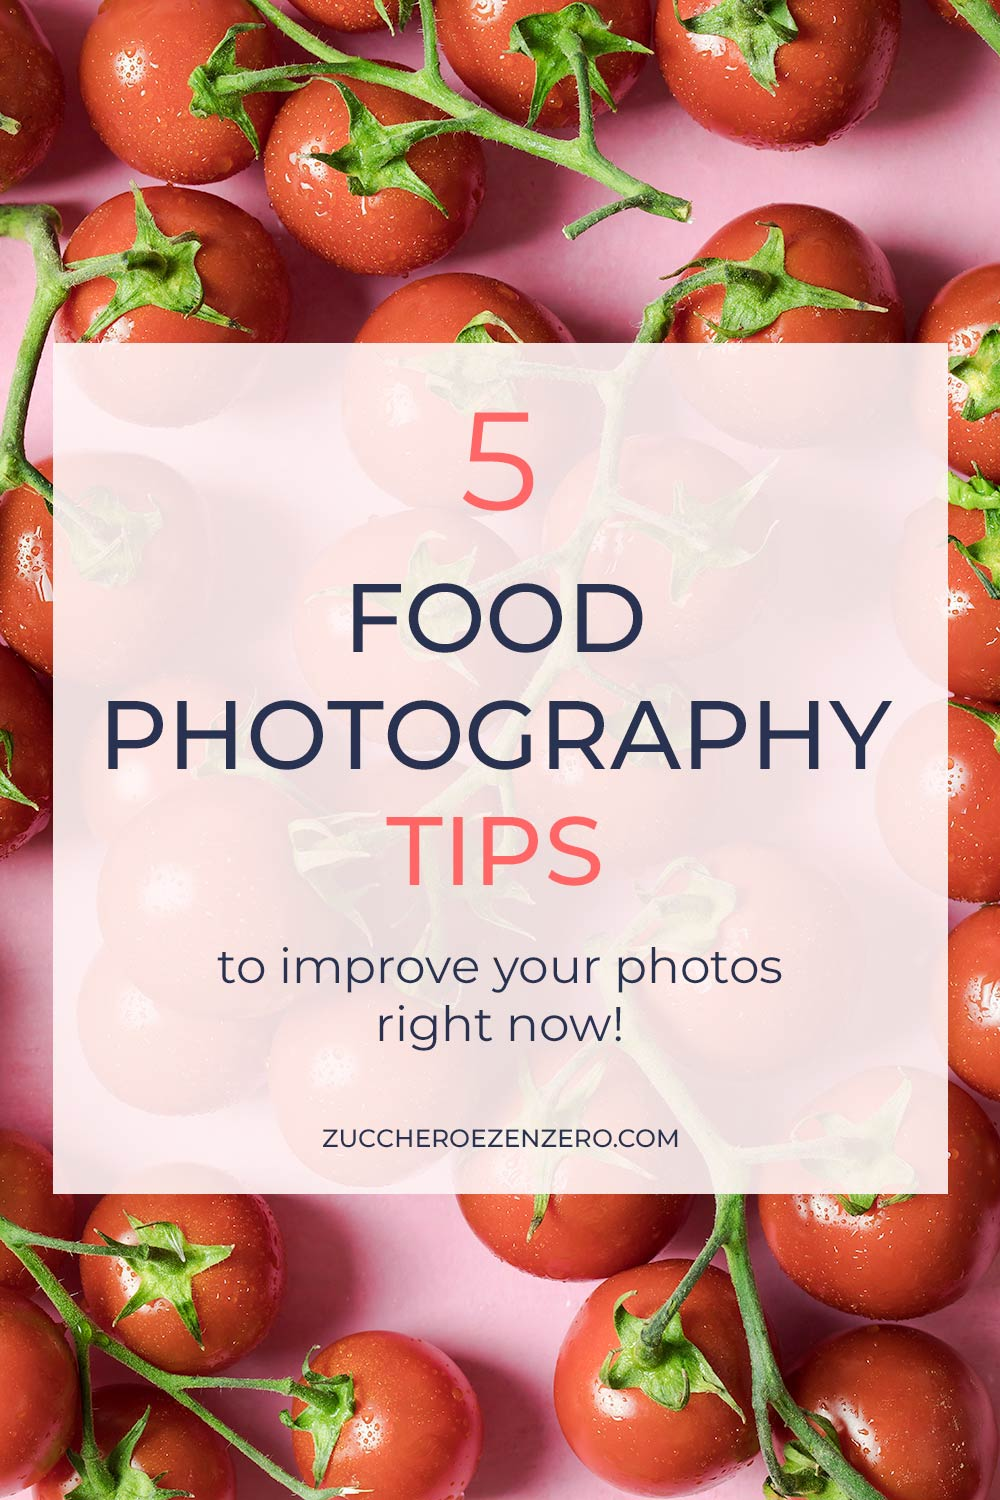 5 tips to improve your food phootography